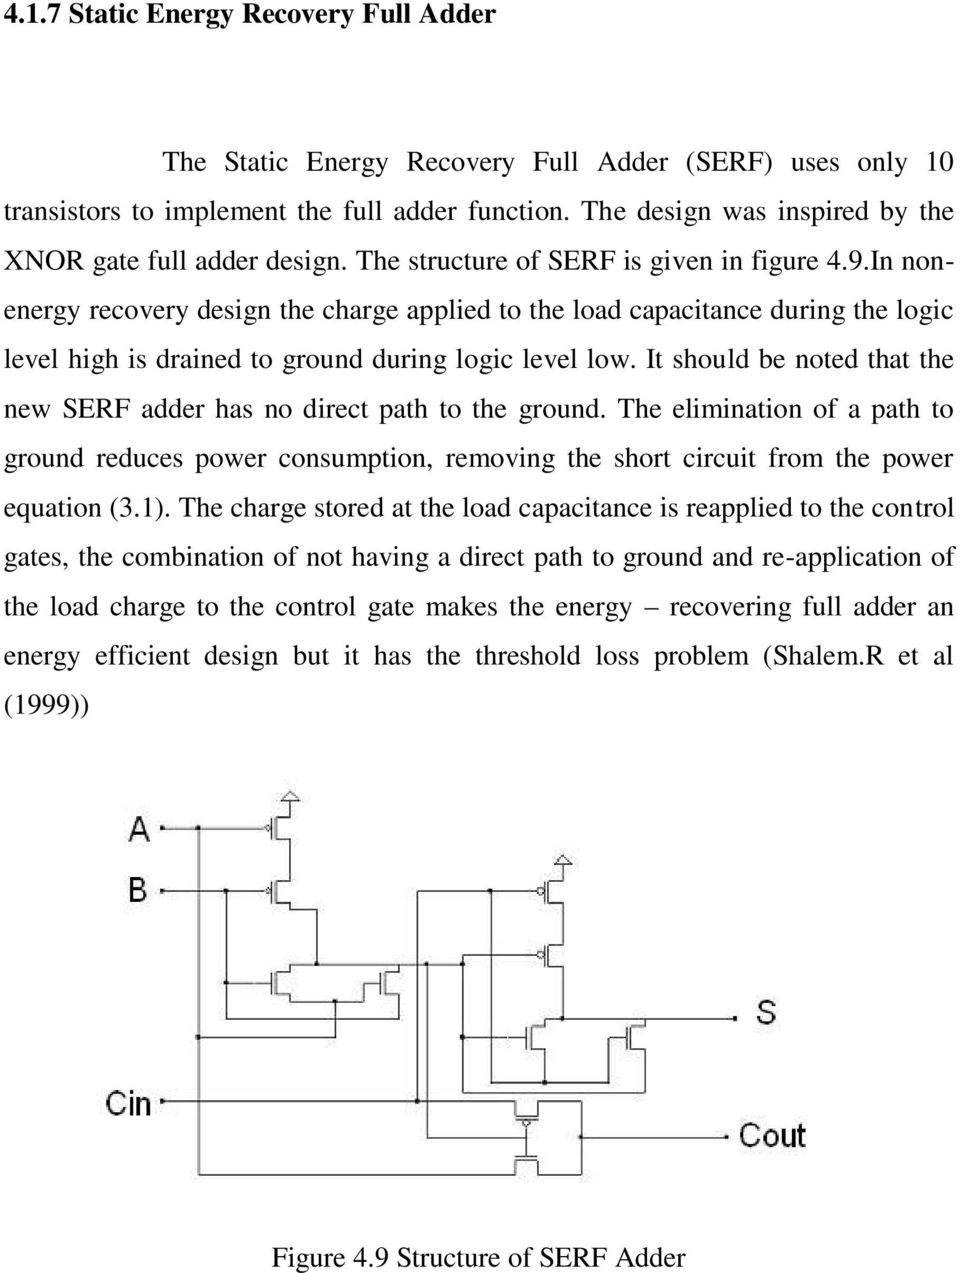 New Adder Cells Are Useful For Designing Larger Circuits Despite Integrated Circuit 1bit Full Cell In Ic Not Working As Nonenergy Recovery Design The Charge Applied To Load Capacitance During Logic Level High